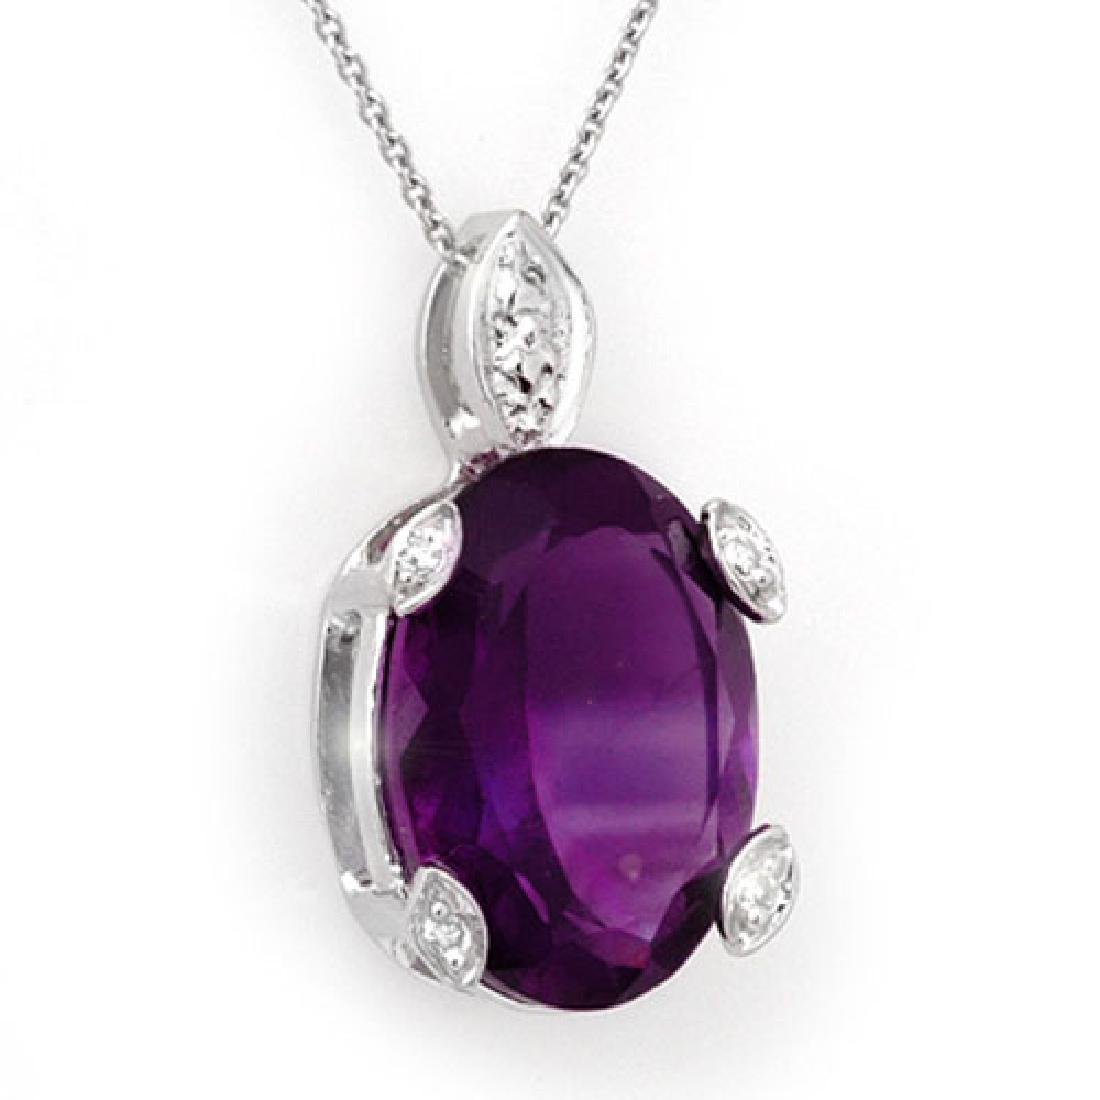 10.10 CTW Amethyst & Diamond Necklace 14K White Gold